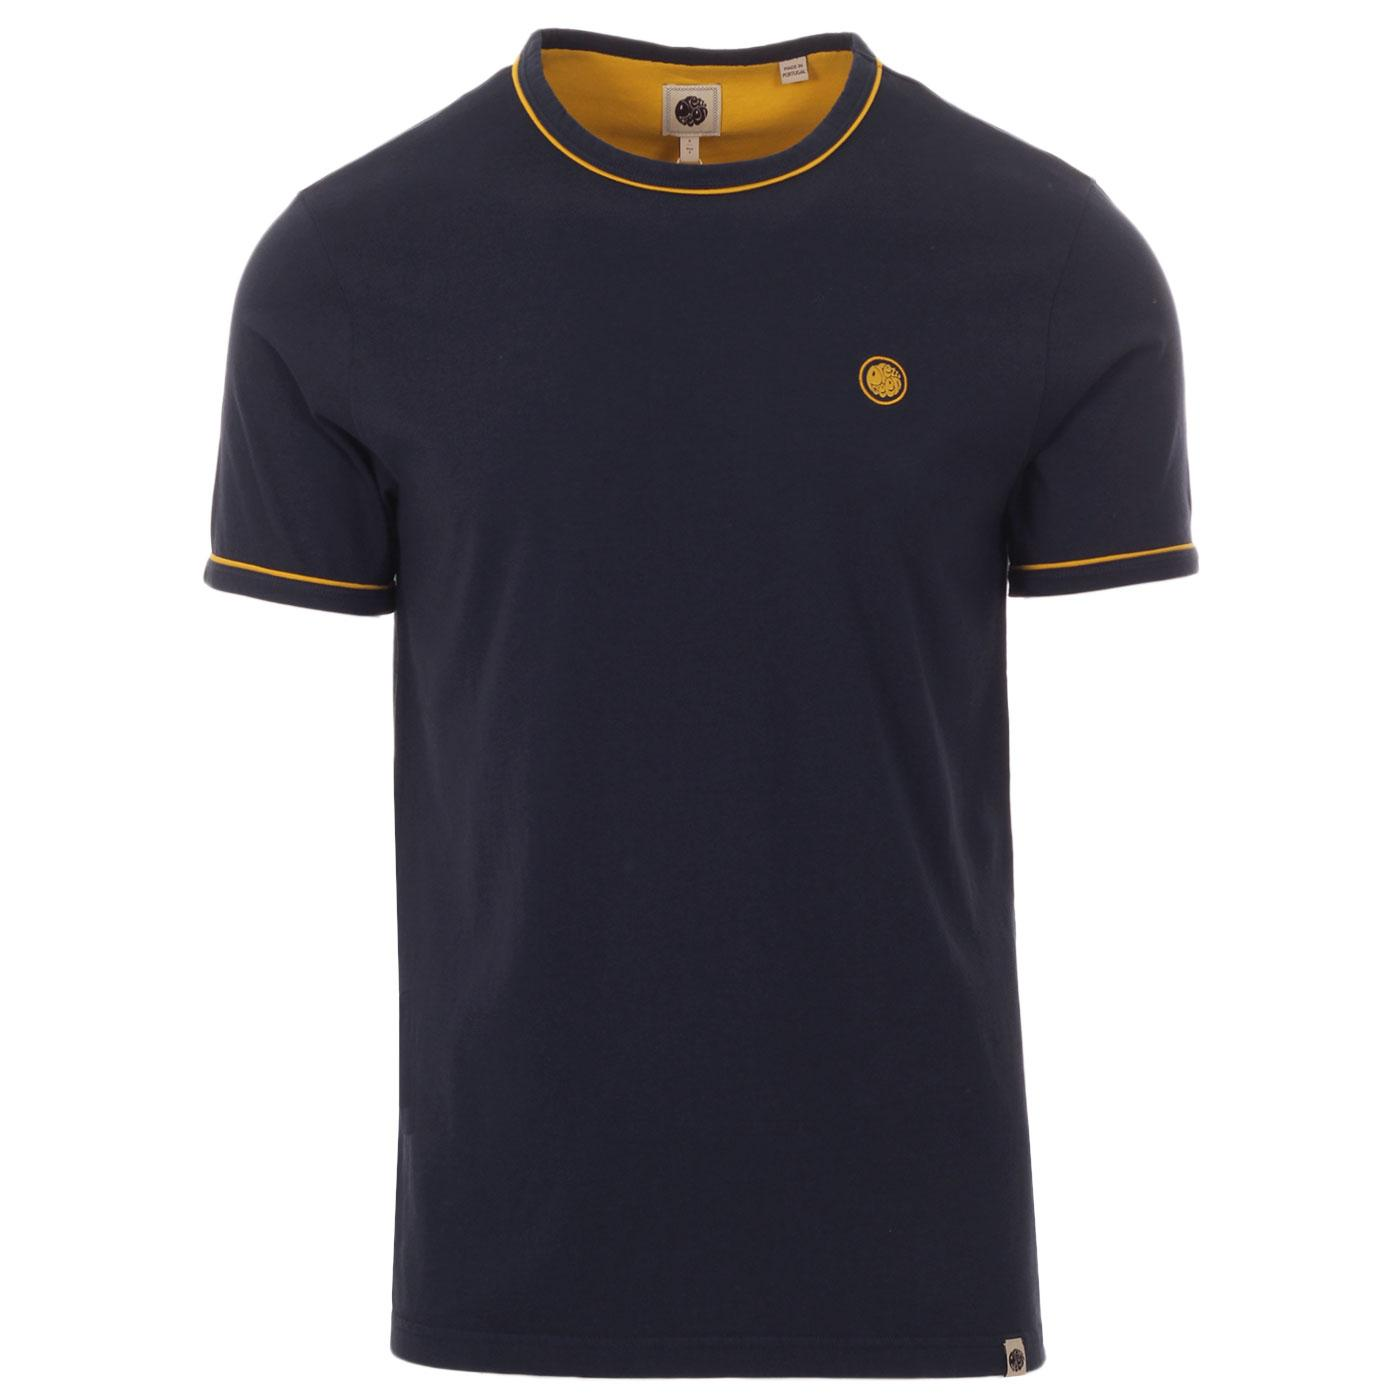 PRETTY GREEN Retro Contrast Piping Ringer Tee (N)